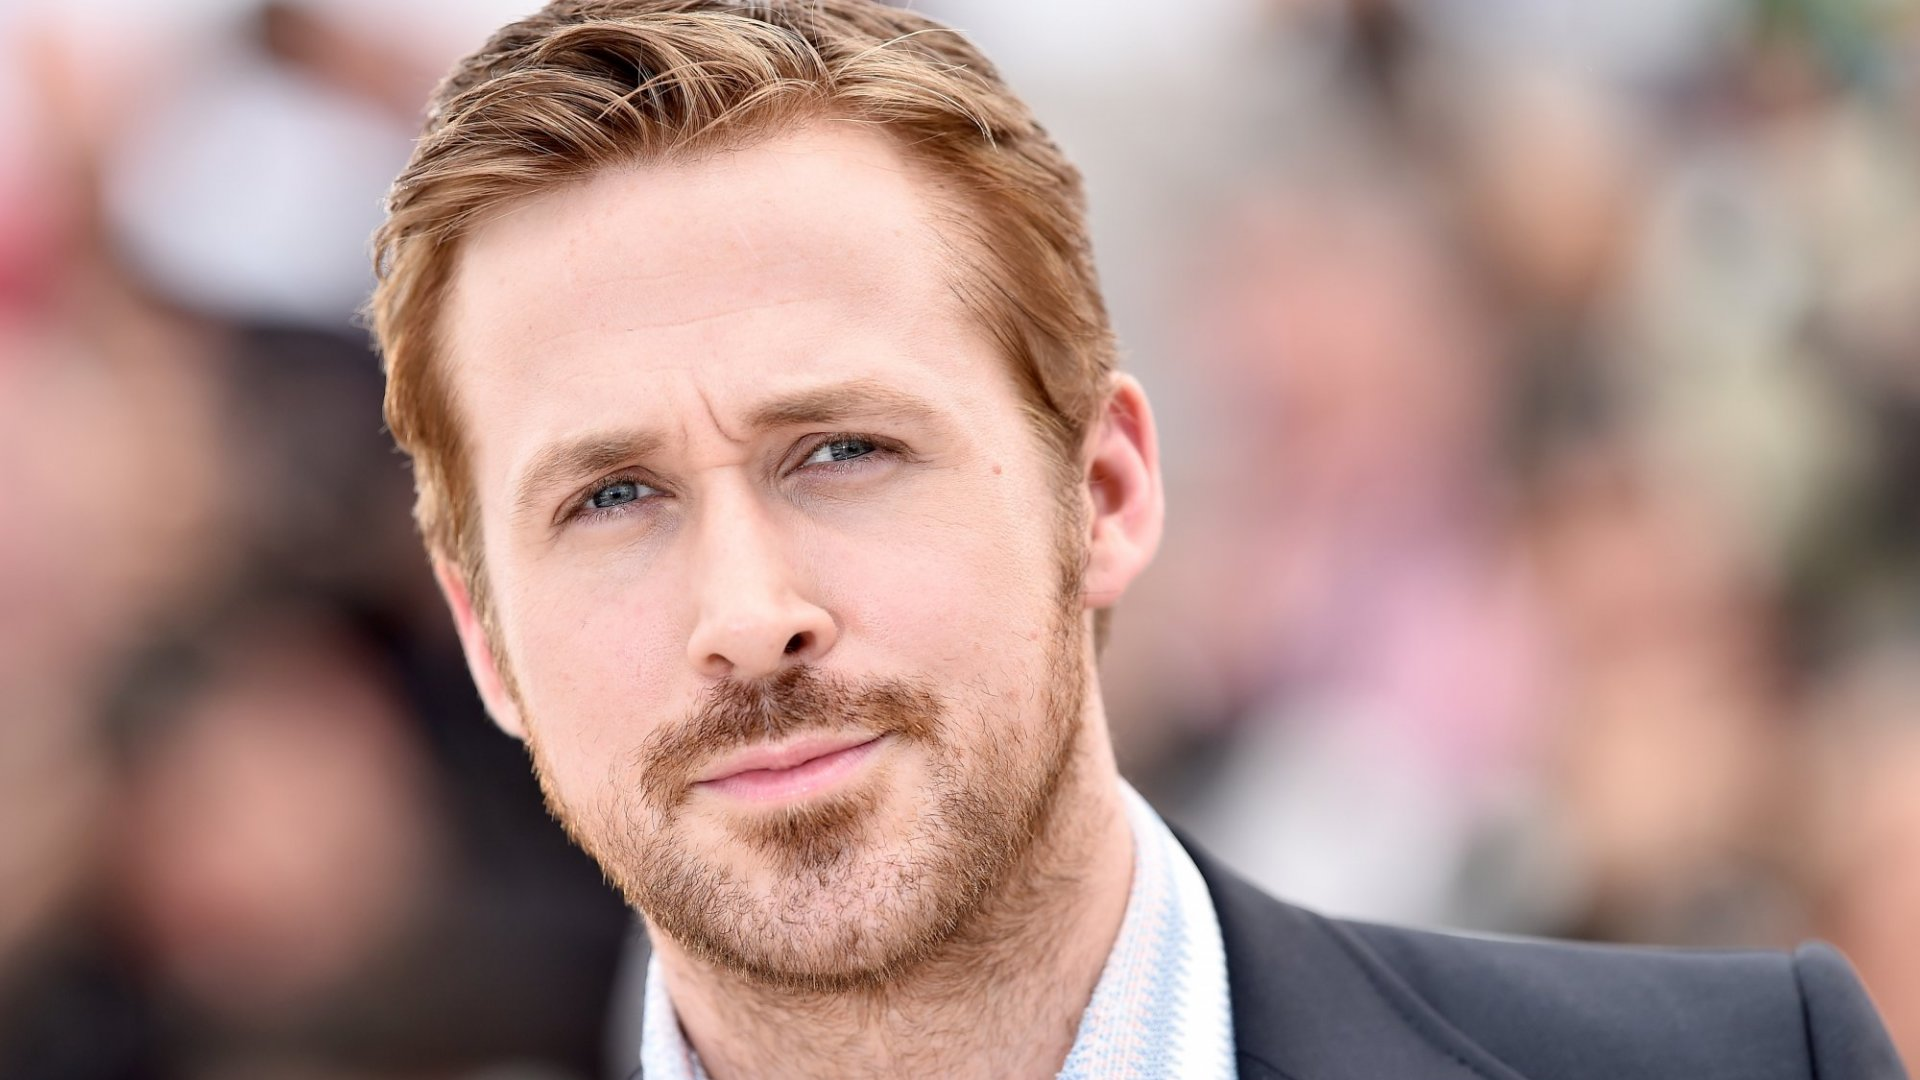 With a Few Tweets, This Tiny Coffee Shop Got Ryan Gosling to Walk Through the Door. Here's How They Did It